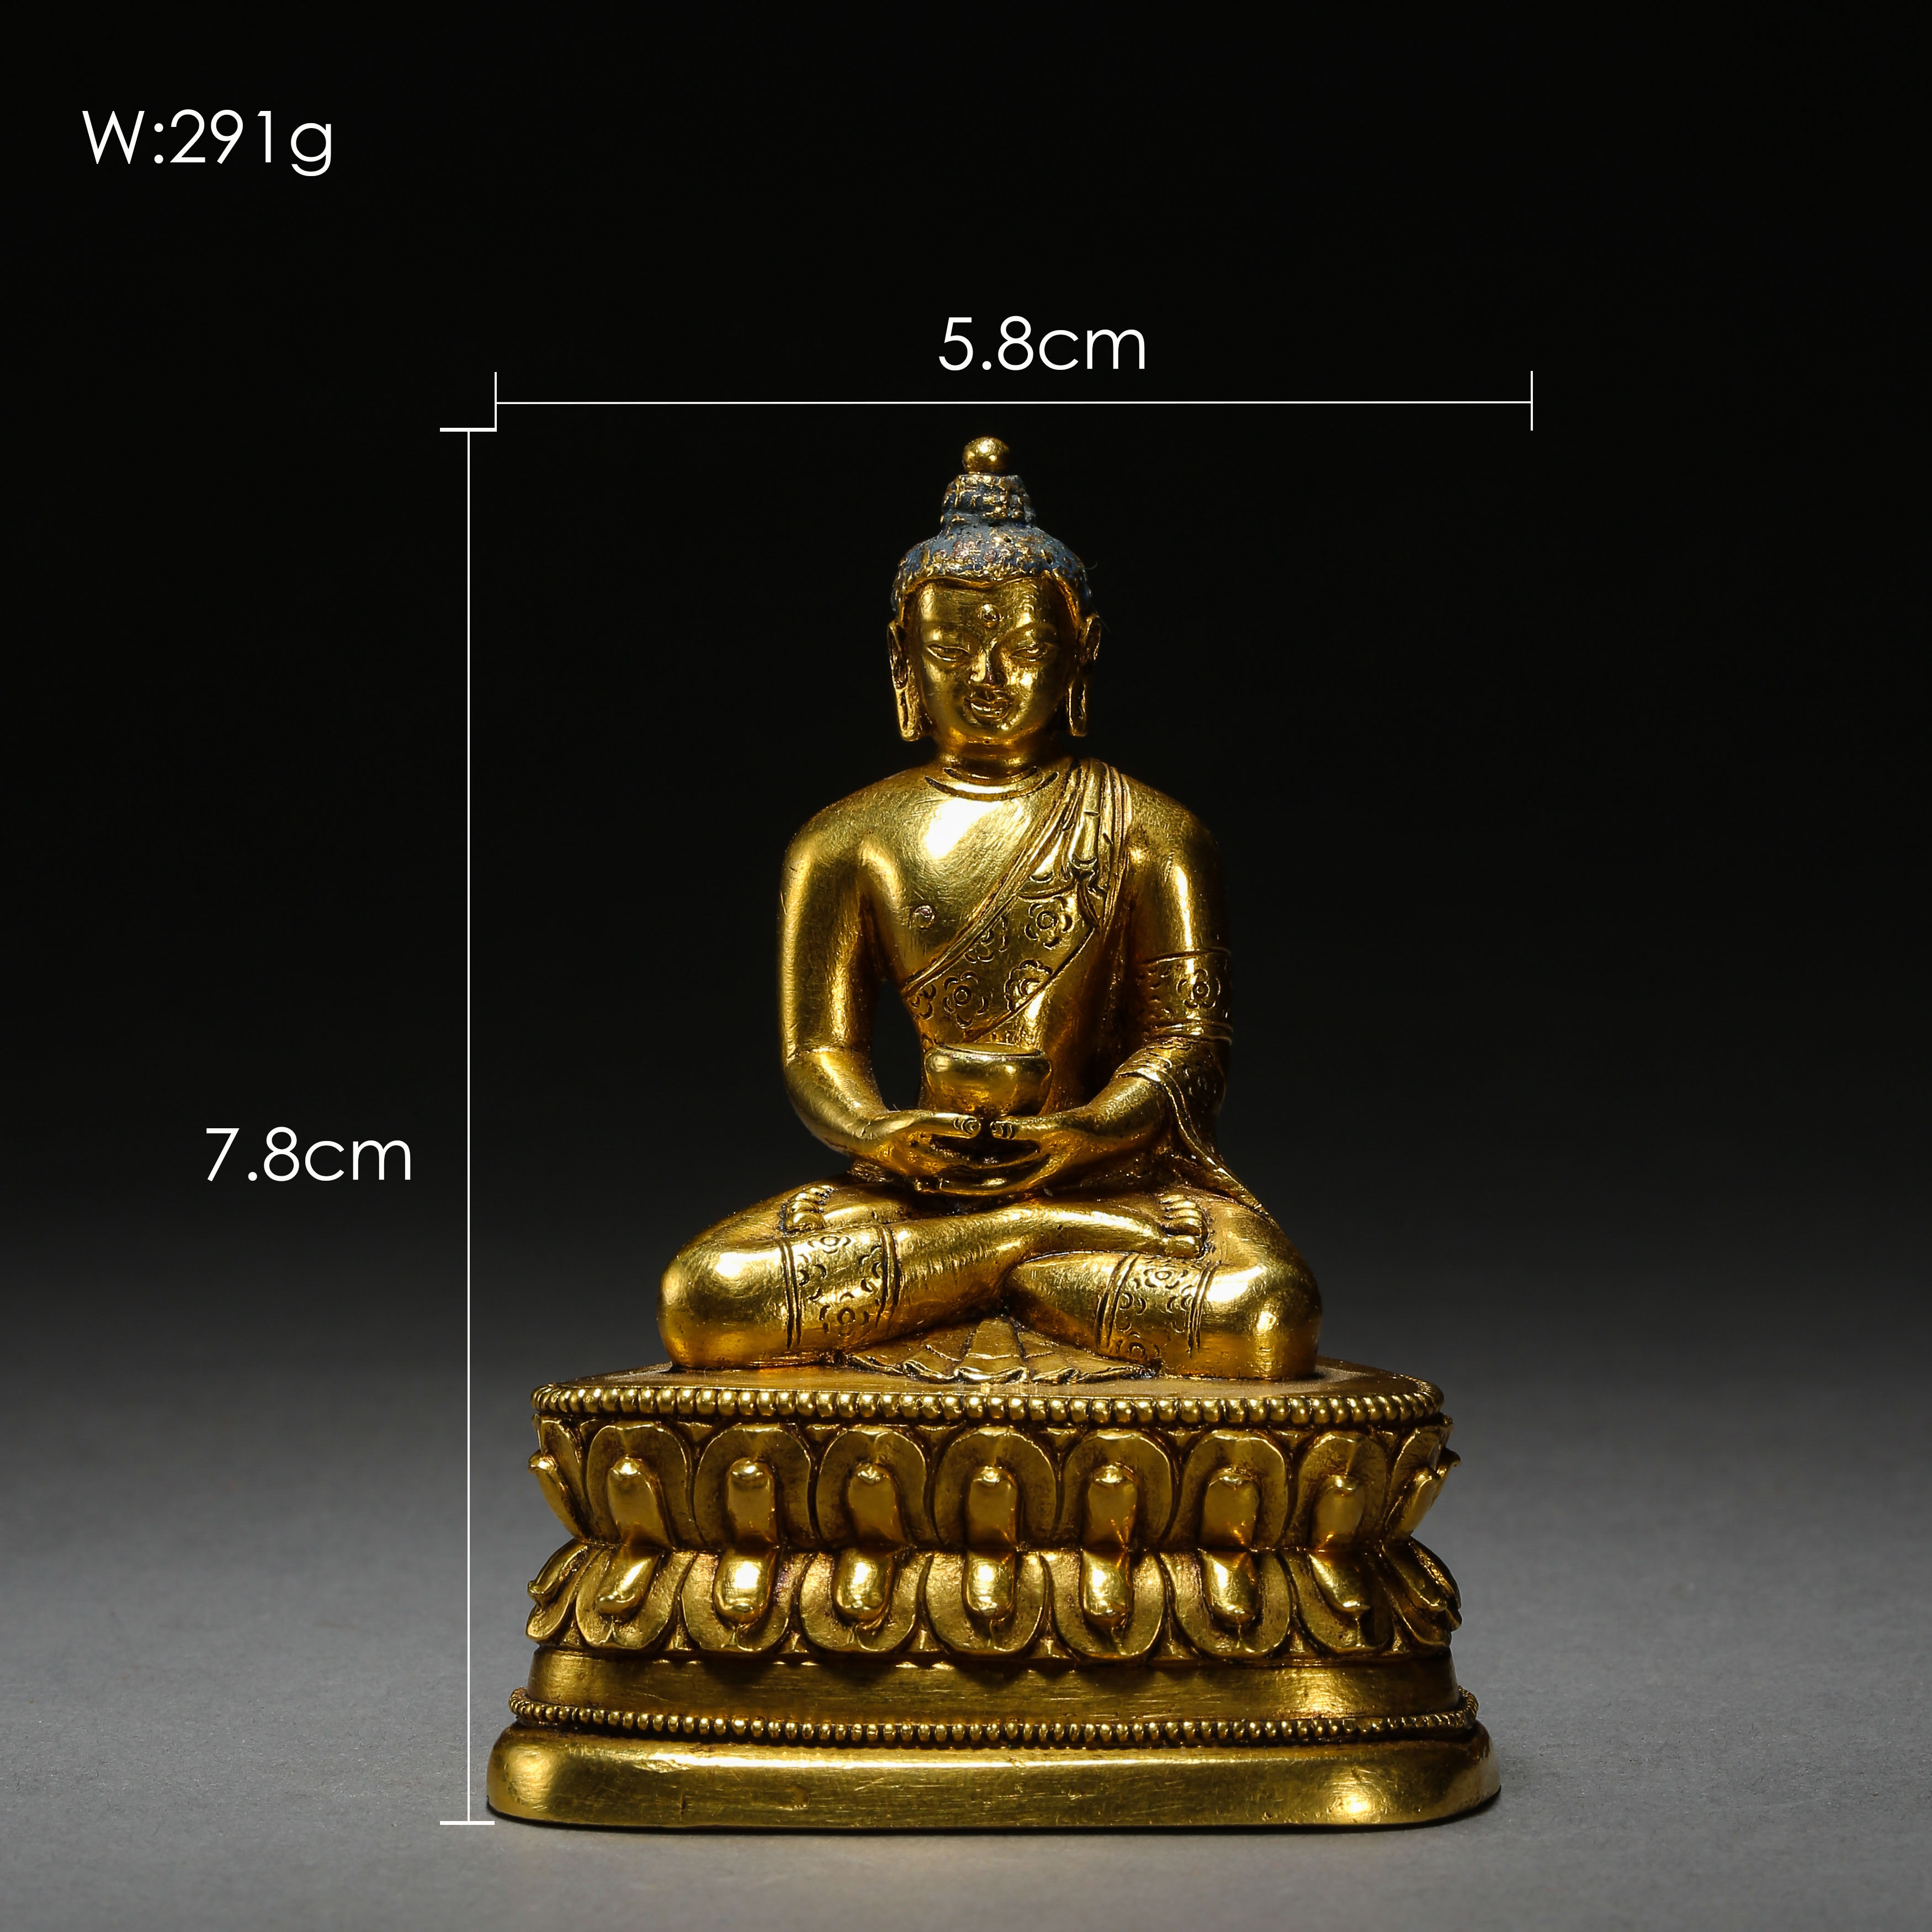 SEATED GILT BRONZE BUDDHA, QING DYNASTY, CHINA - Image 3 of 11